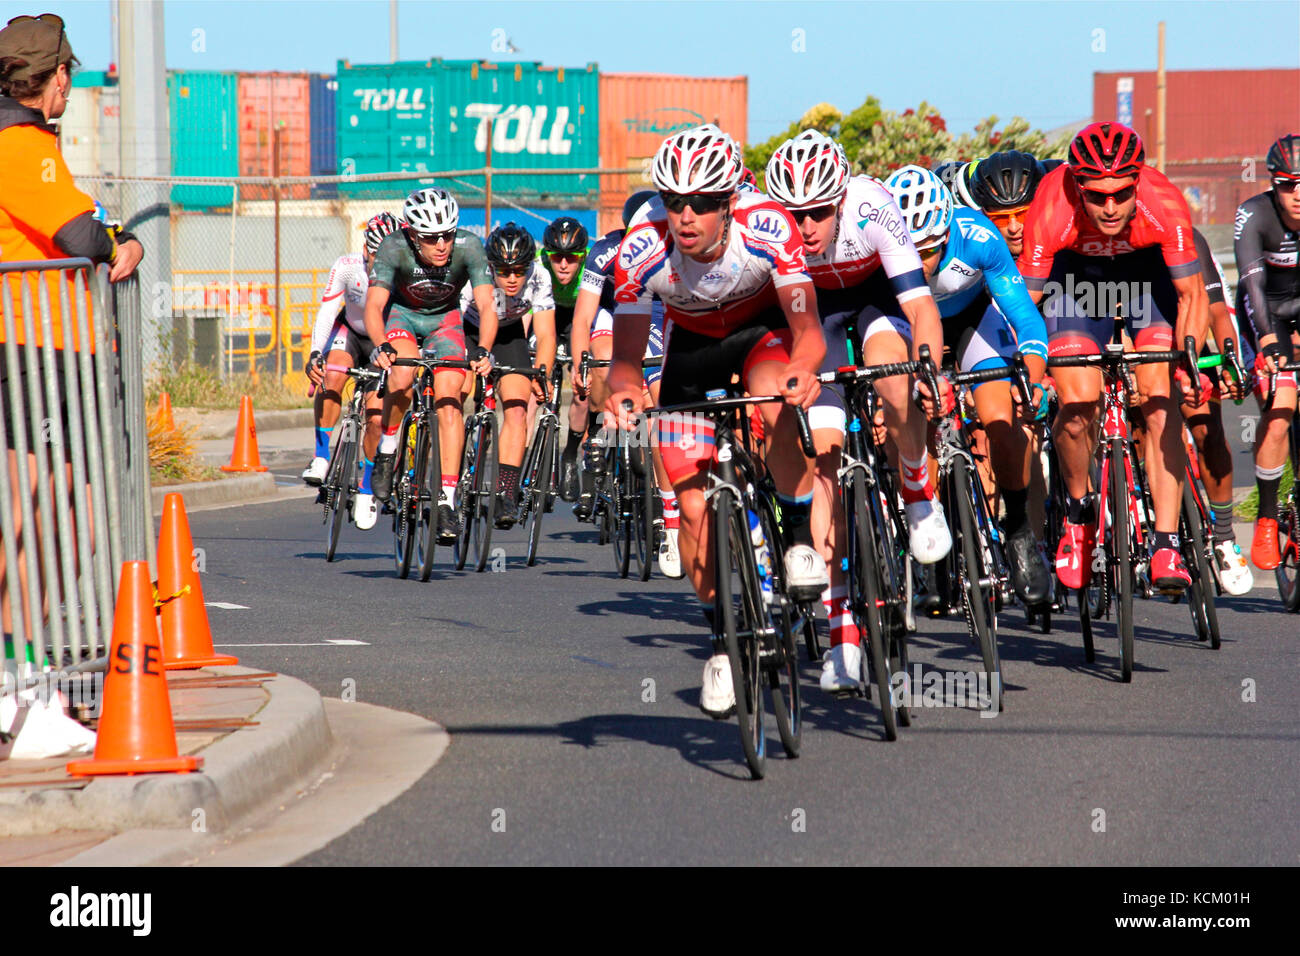 Criterium event in Burnie on New Year's Eve during the summer cycle racing carnival. Northwestern Tasmania, Australia Stock Photo